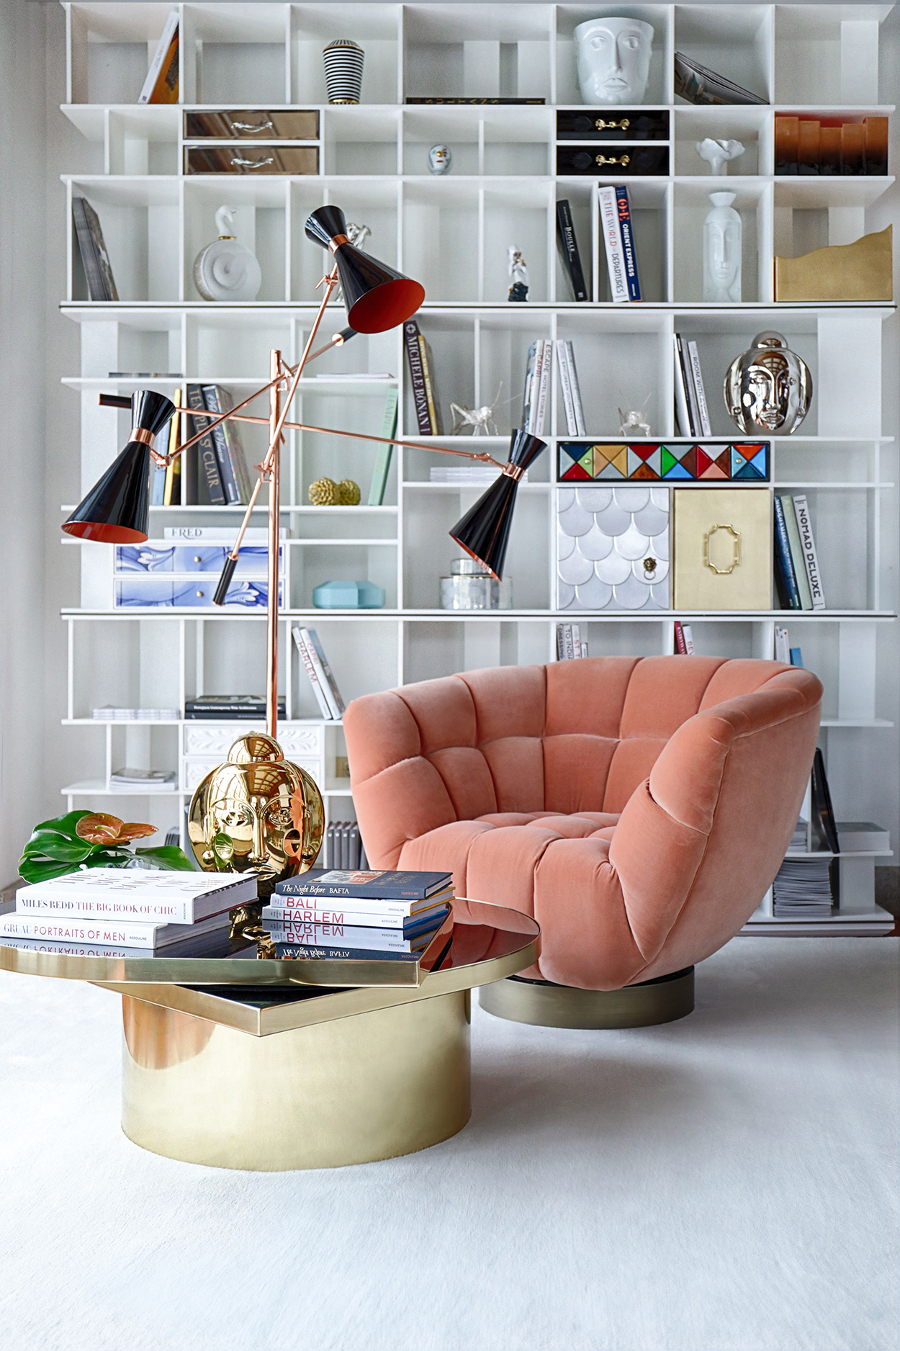 Home Decor-The Fabrics You Need This Summer (3)  Home Decor: The Fabrics You Need This Summer Home Decor The Fabrics You Need This Summer 3